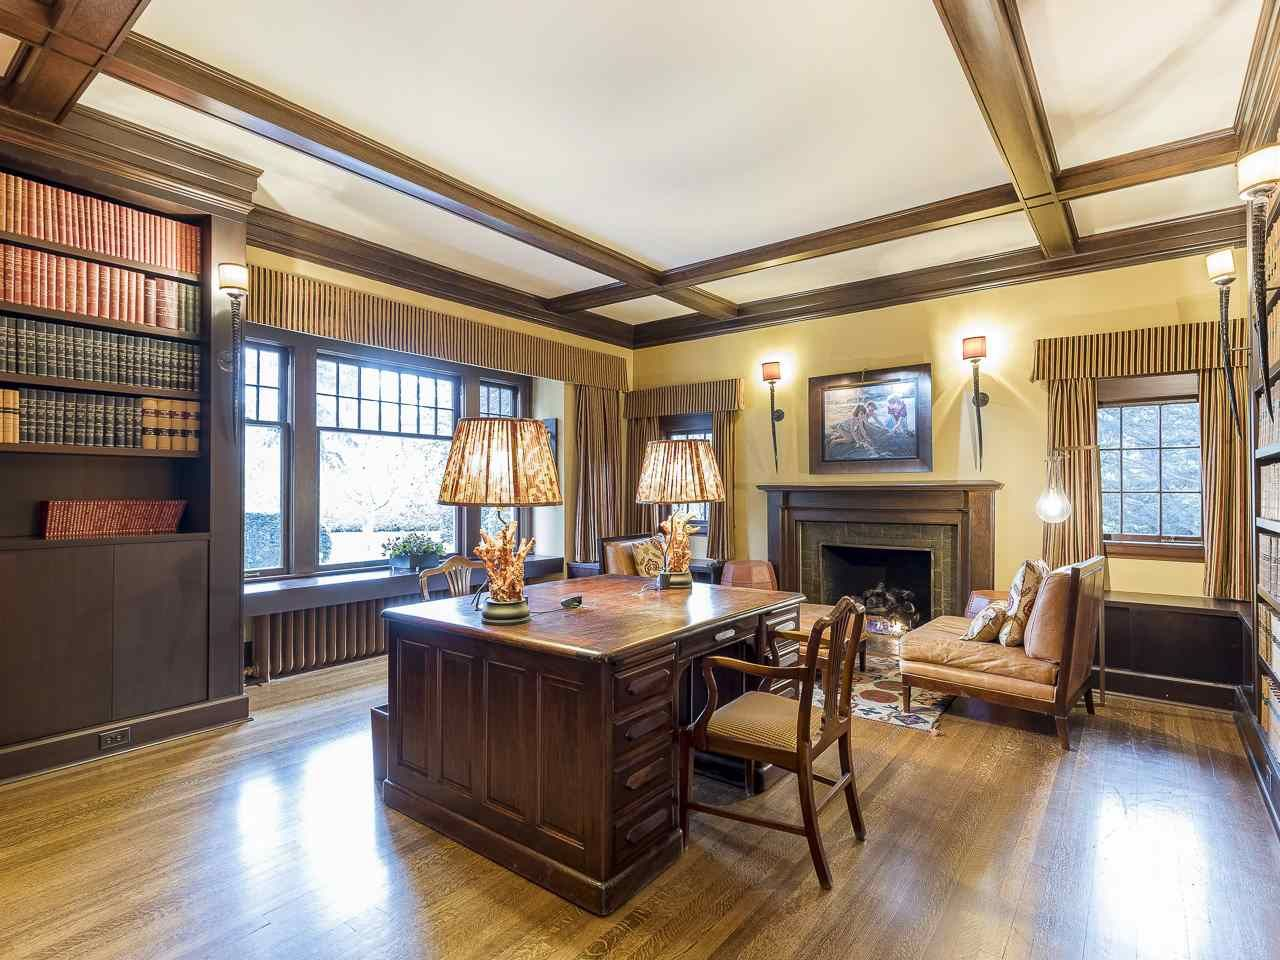 Photo 5: Photos: 3369 THE CRESCENT in Vancouver: Shaughnessy House for sale (Vancouver West)  : MLS®# R2534743